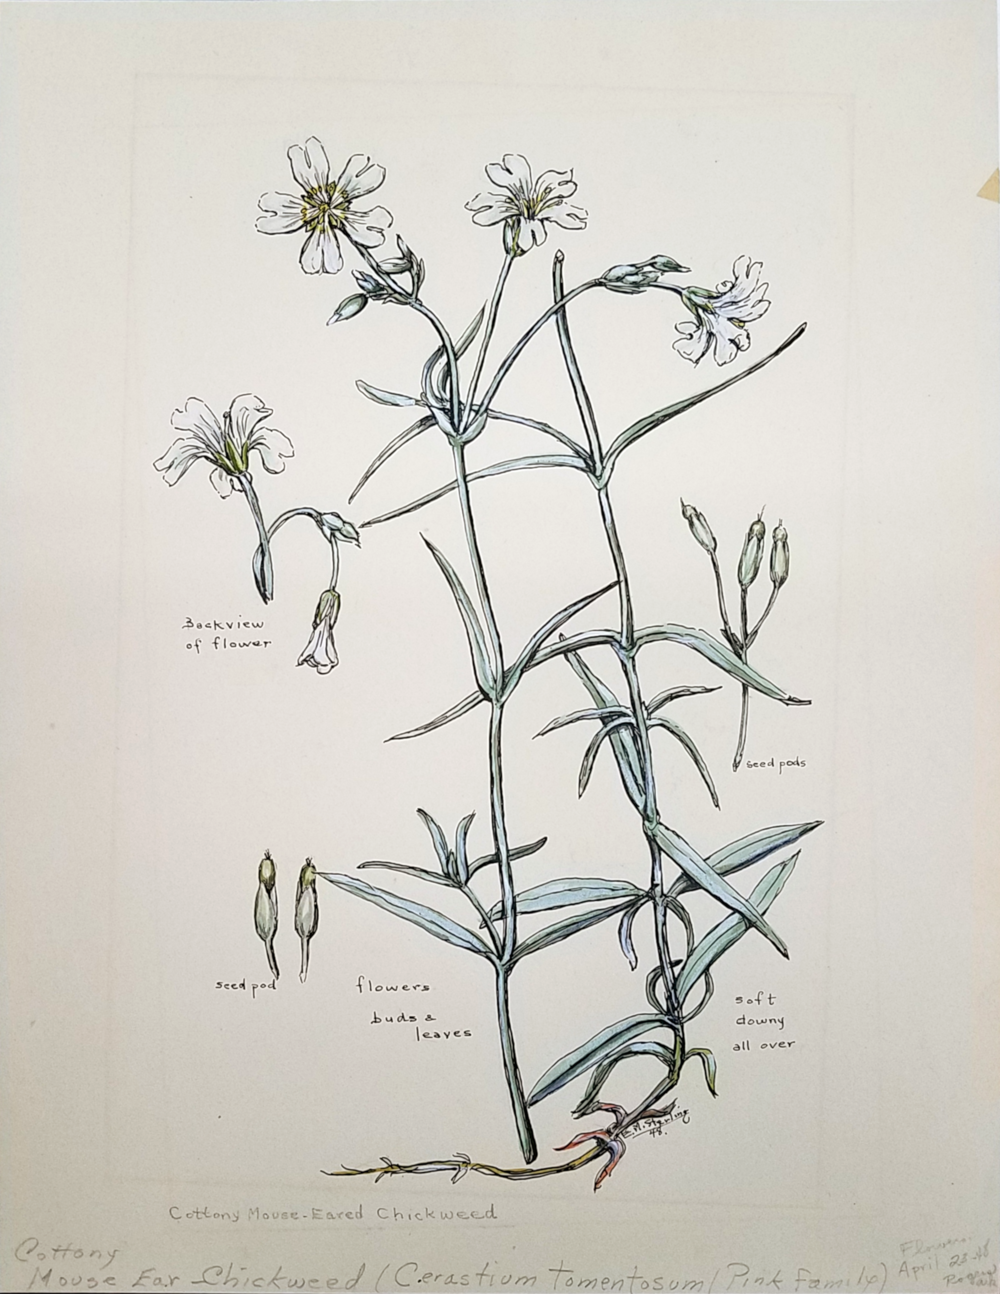 Common Mouse-Eared Chickweed